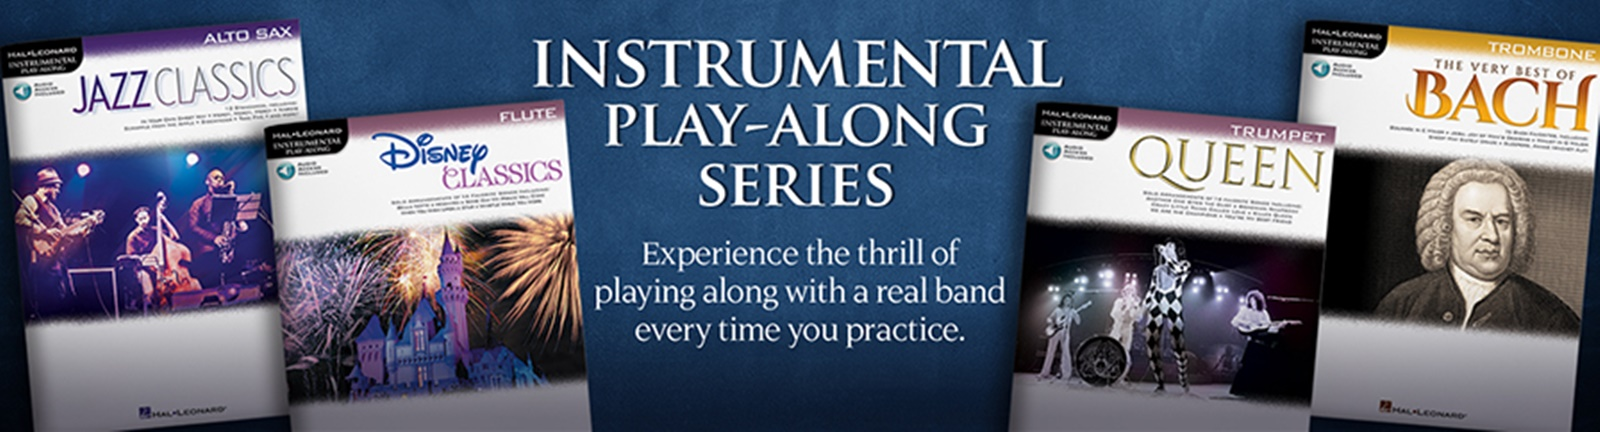 Instrumental Play-Along